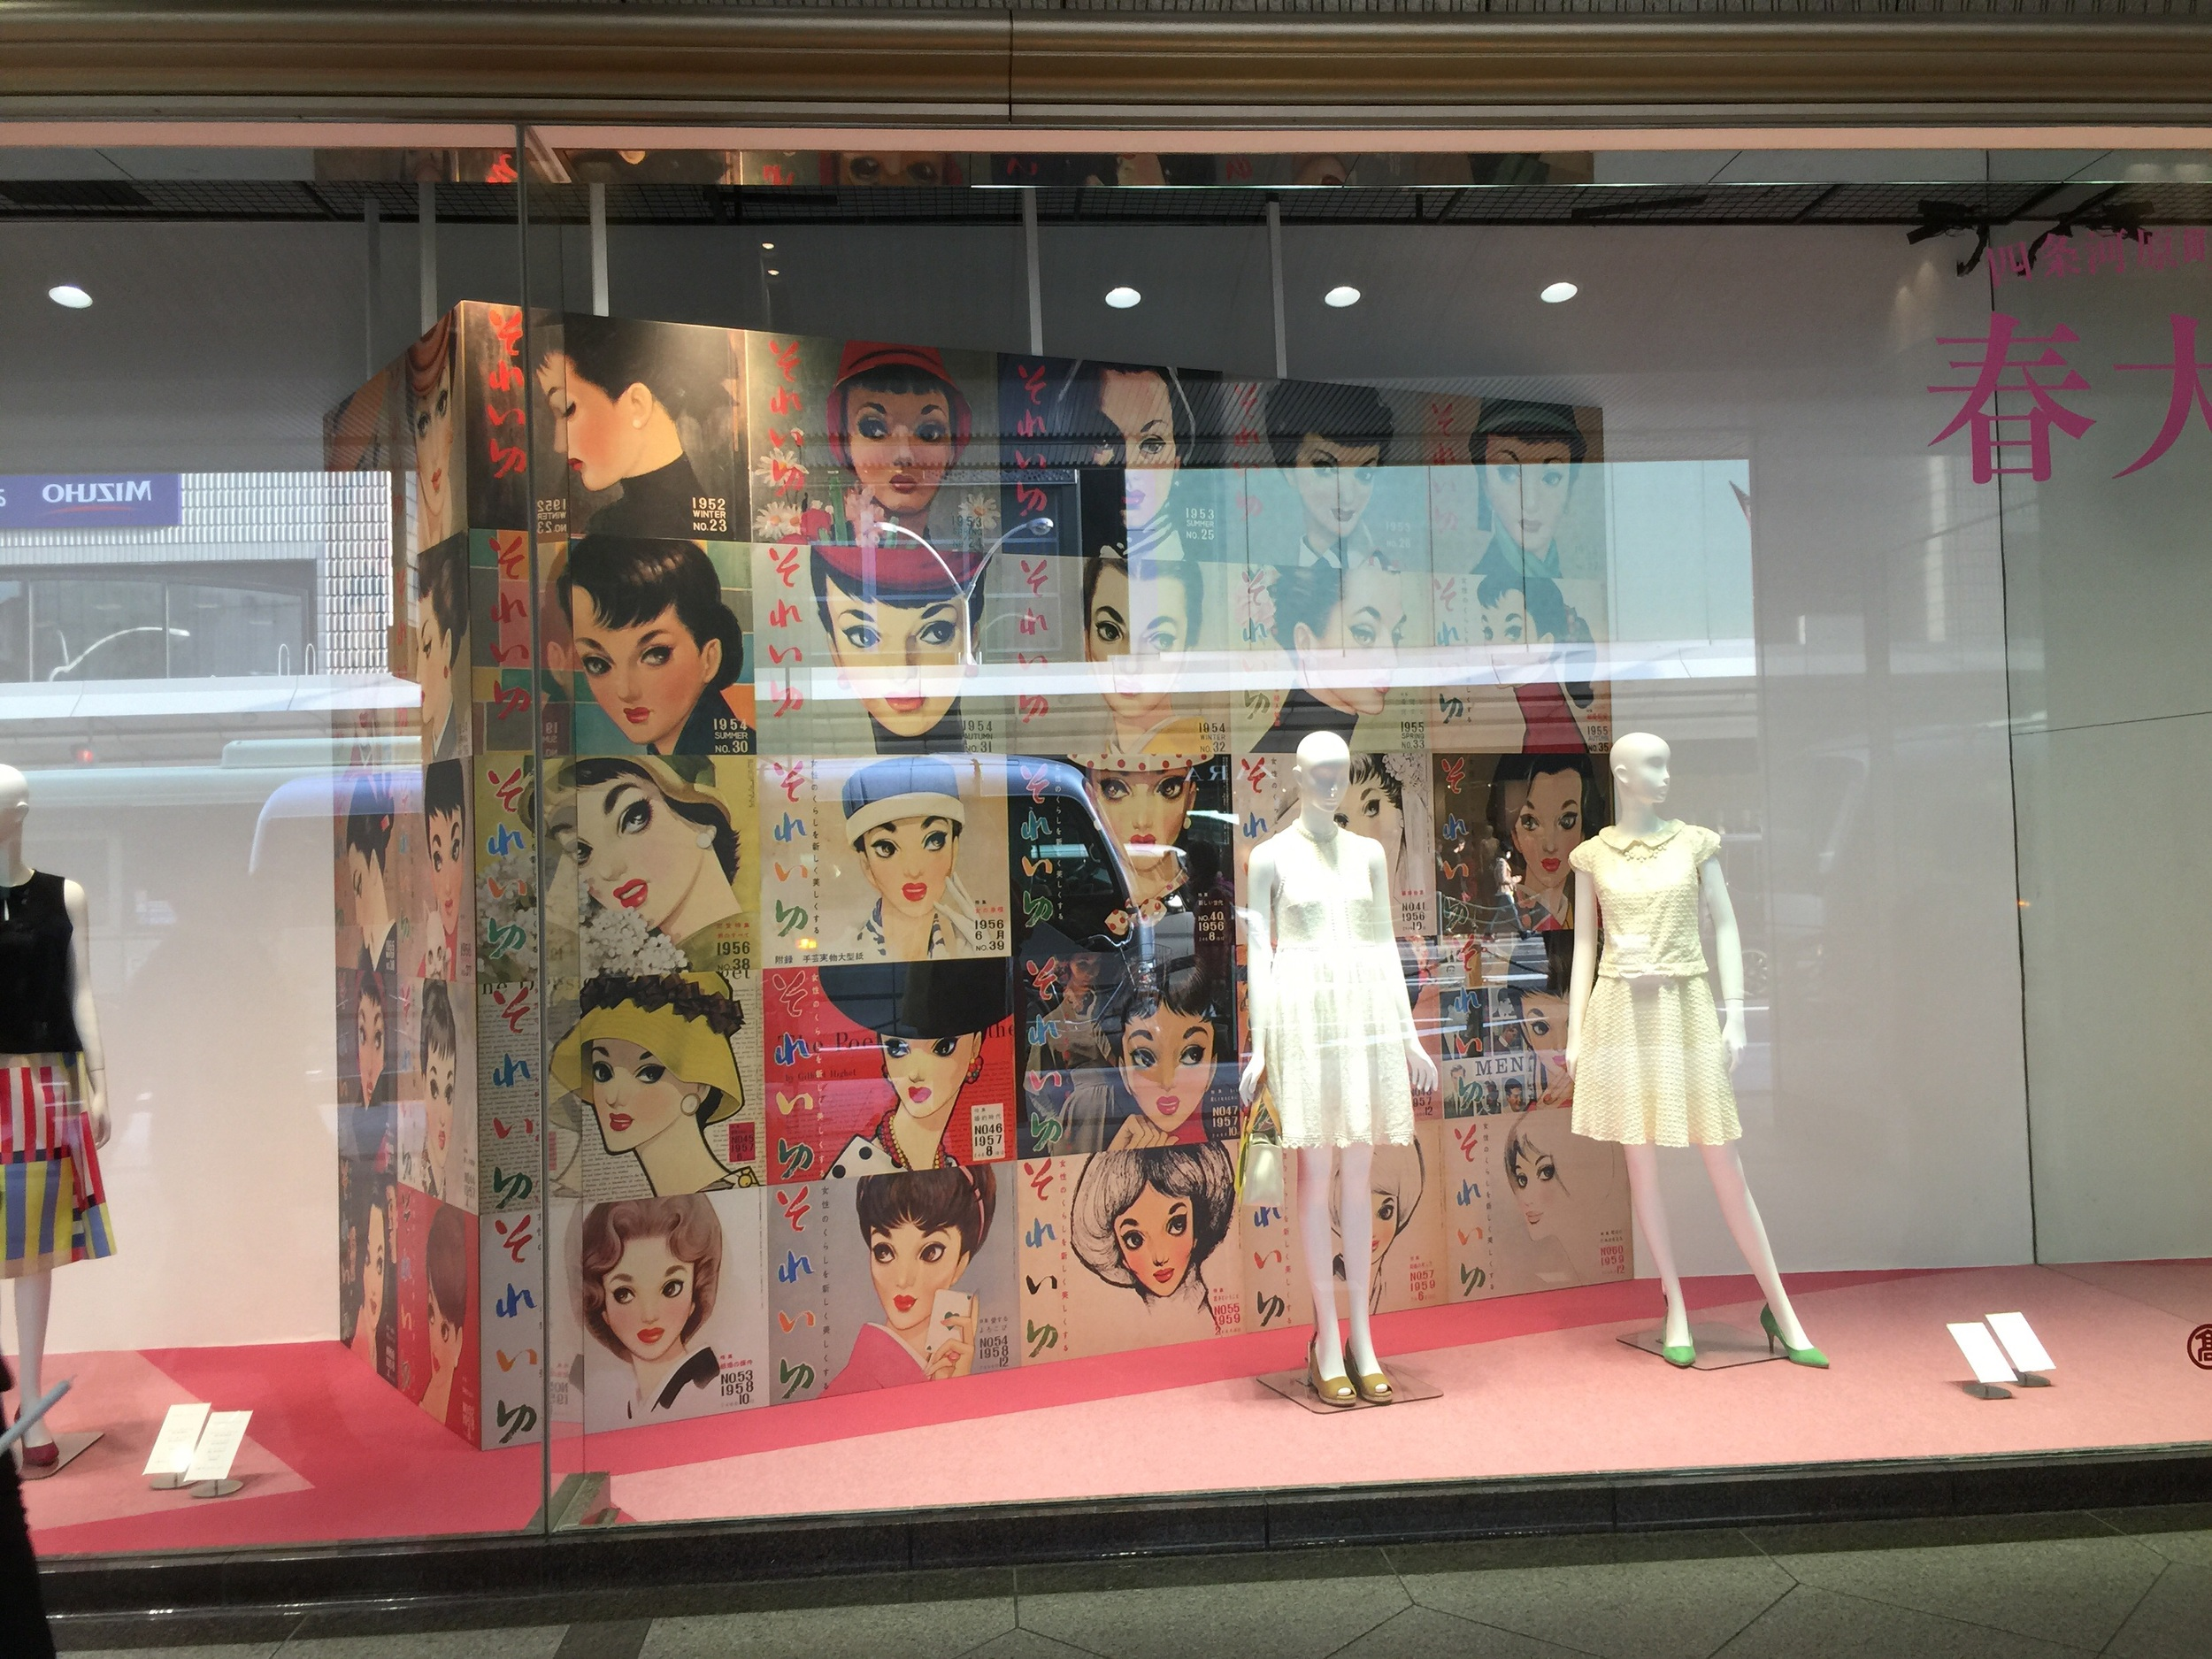 Fourthies and Fifties fashion is celebrated as its the 7o bday for the shop